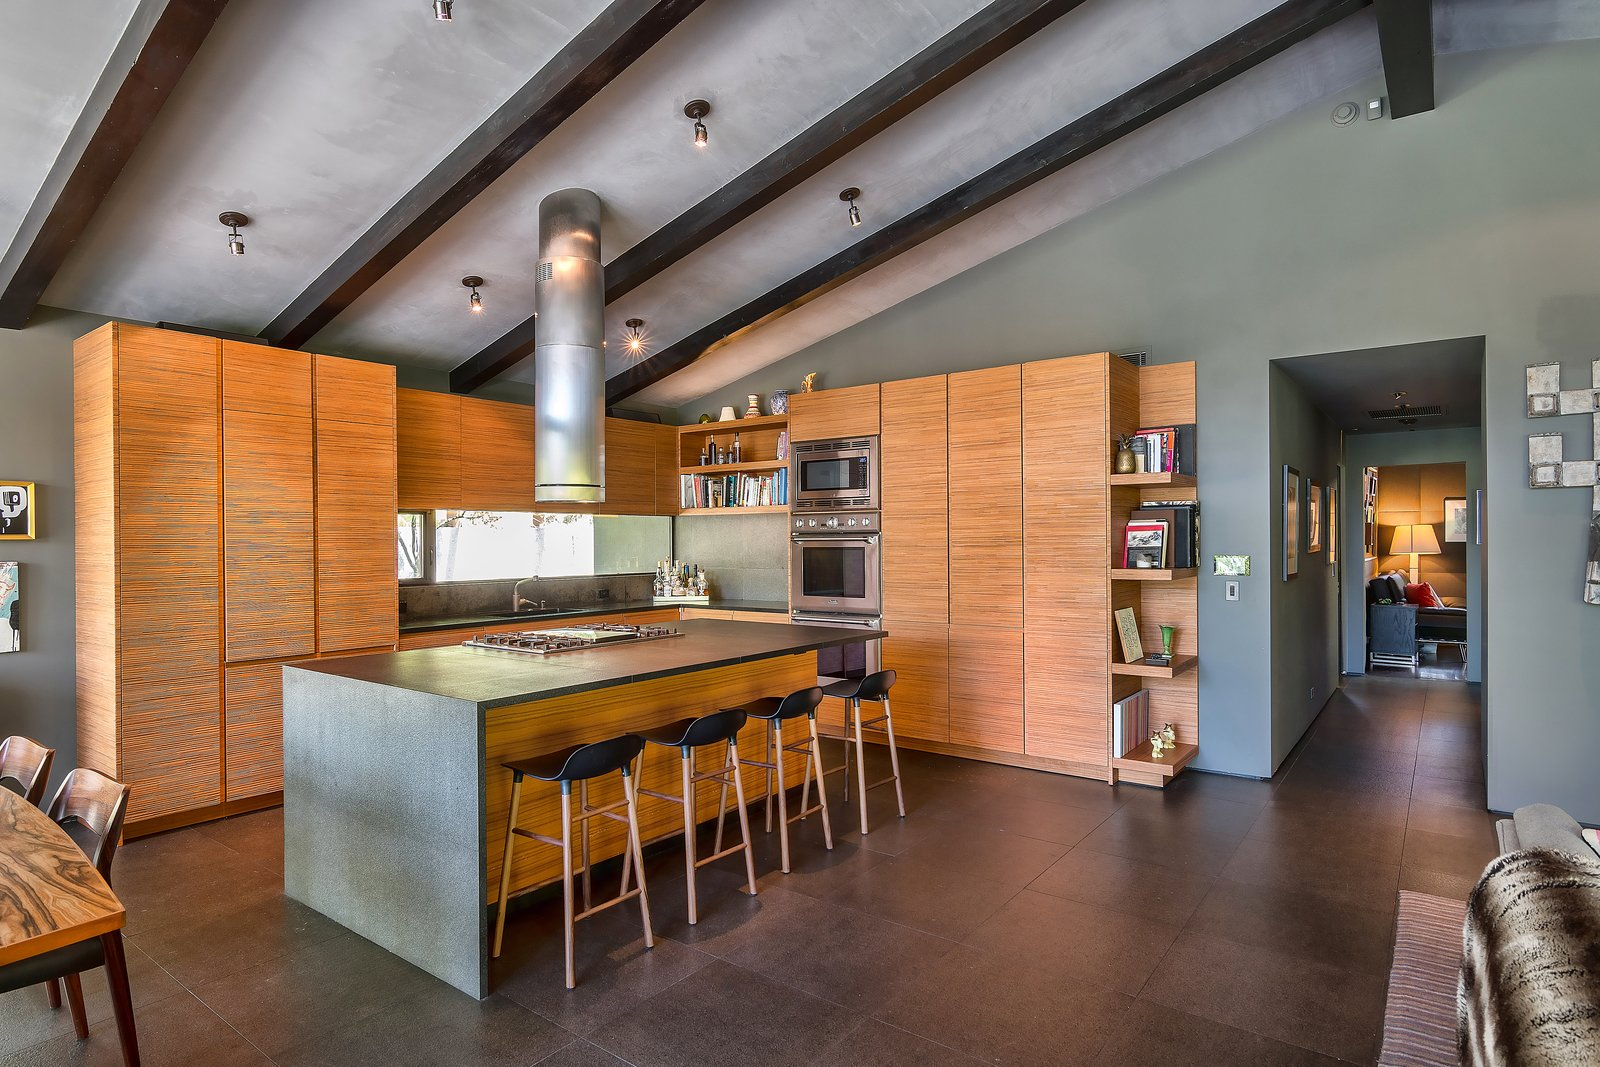 Kitchen, Wood Cabinet, Ceiling Lighting, Range, Wall Oven, Stone Counter, and Drop In Sink  Photo 6 of 14 in John Legend and Chrissy Teigen's Former Midcentury Home in the Hollywood Hills Is For Sale